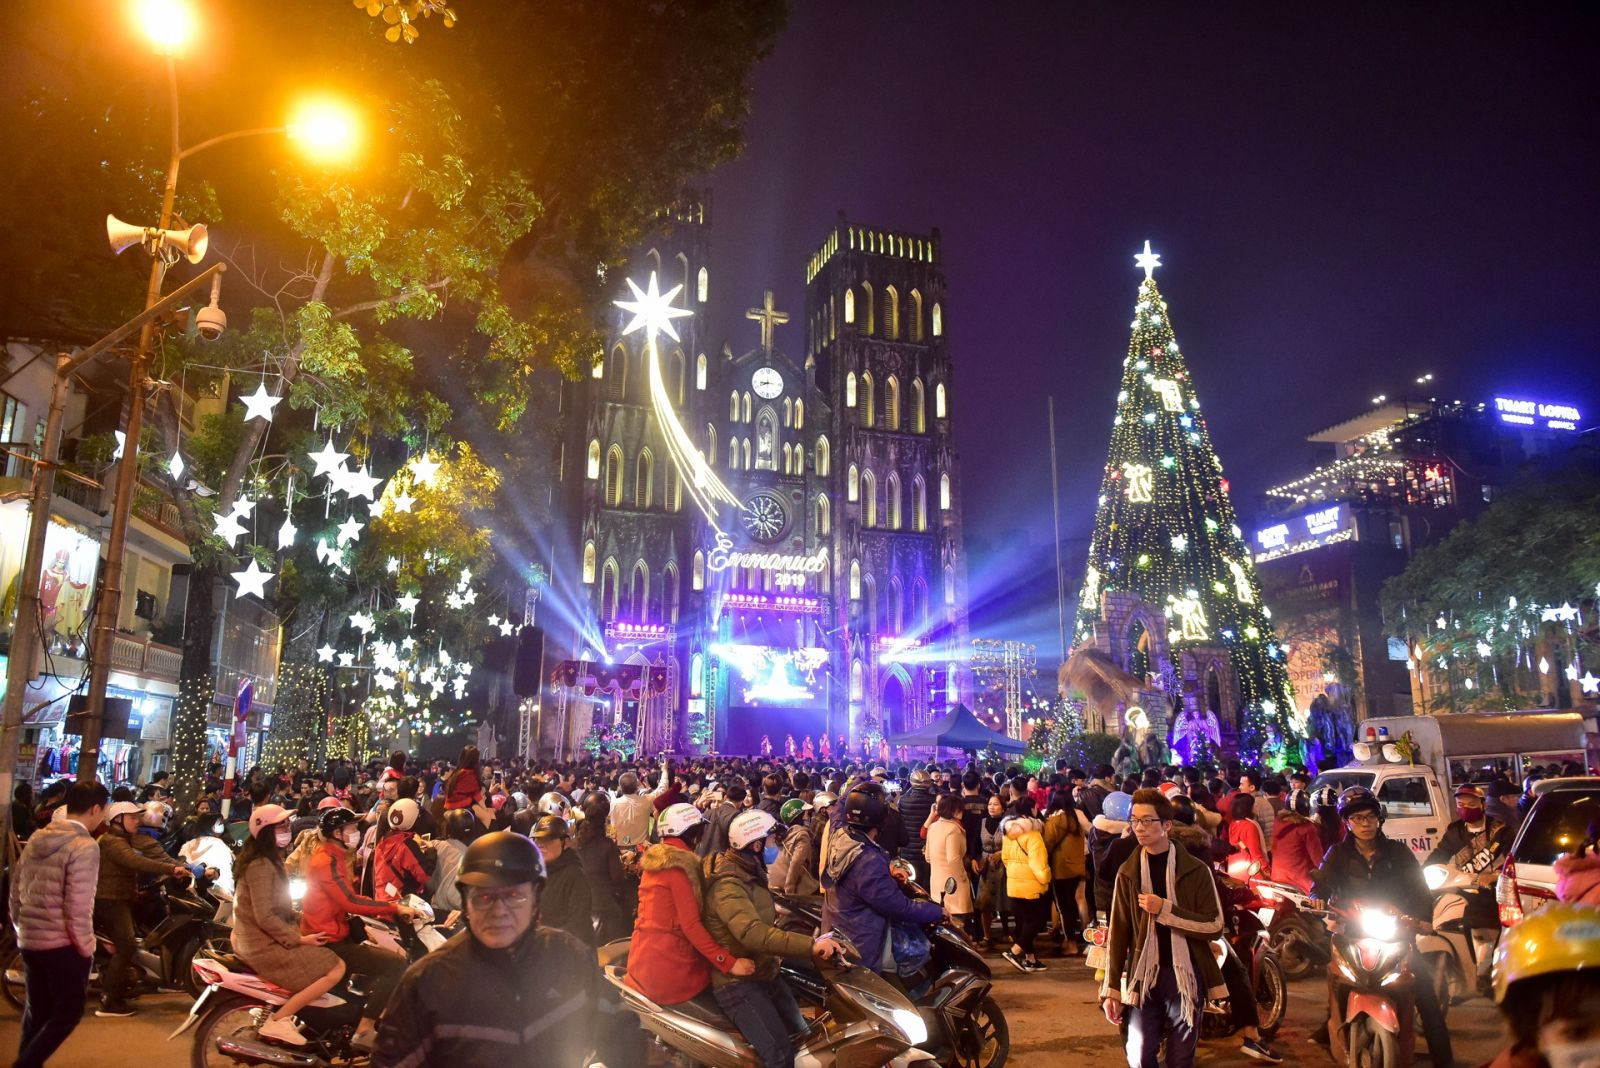 Crowded Christmas in Vietnam